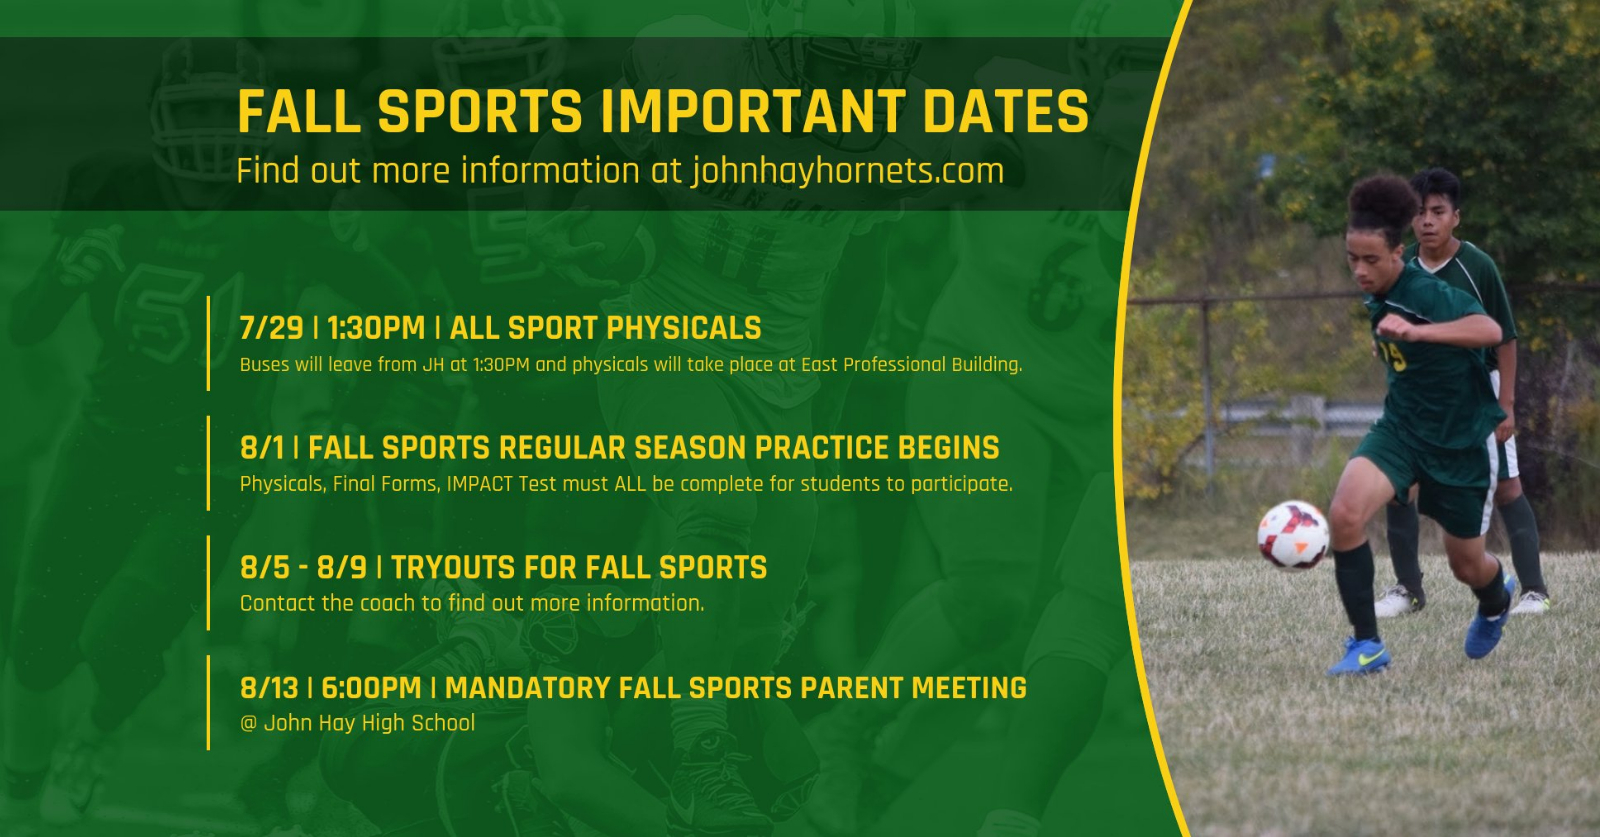 Fall Sports Important Dates